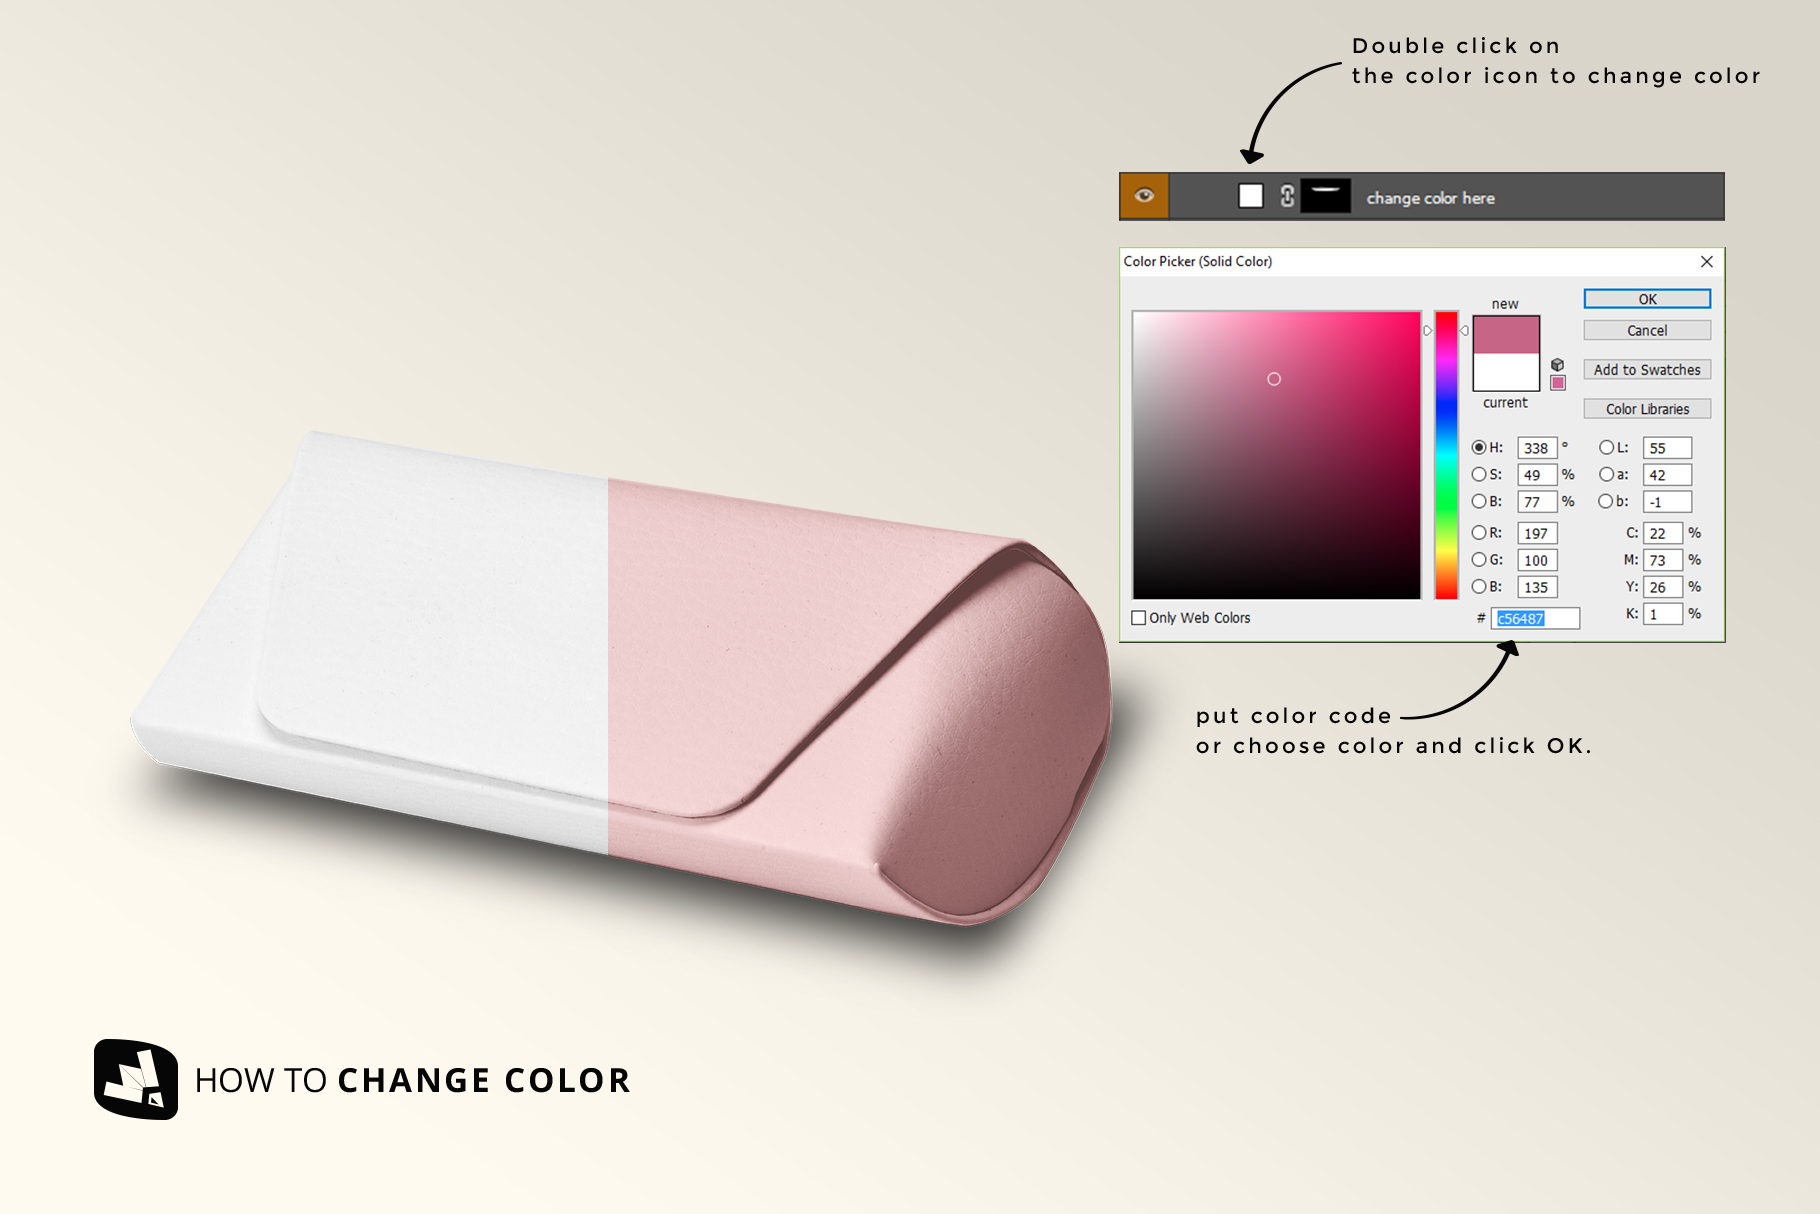 how to change color of the leather eyewear box mockup